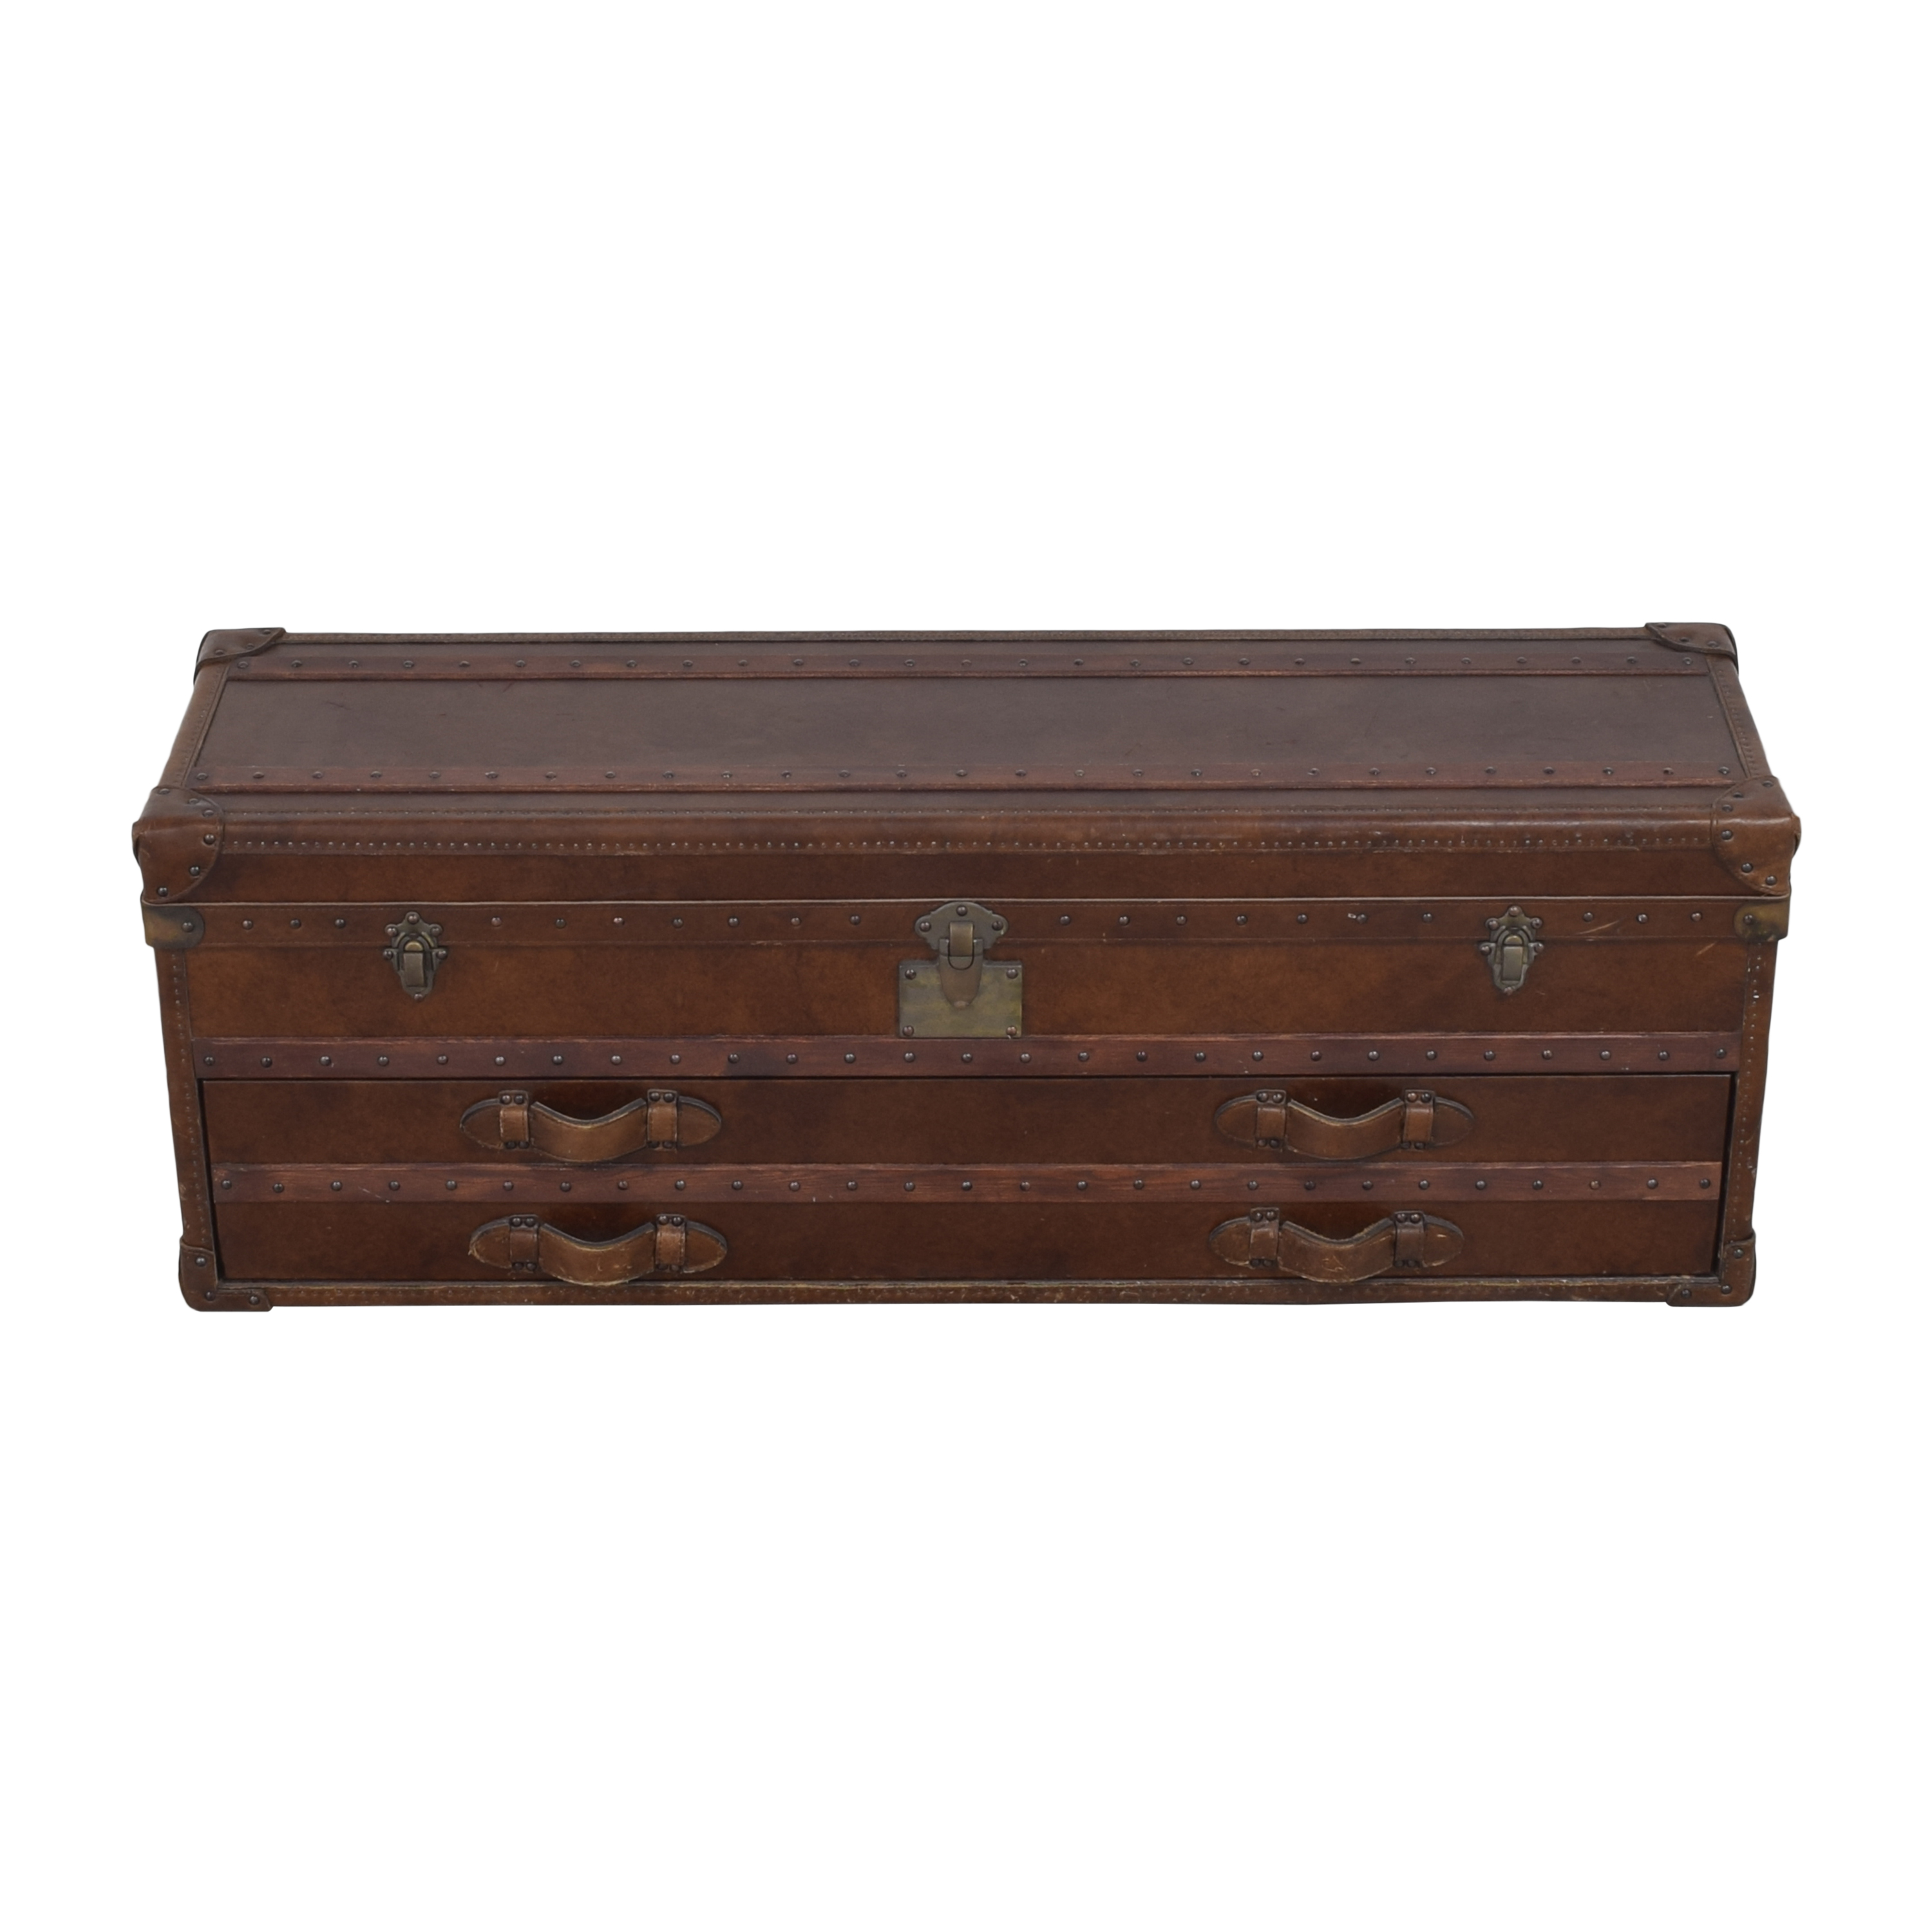 Restoration Hardware Restoration Hardware Mayfair Steamer Trunk Low Chest pa